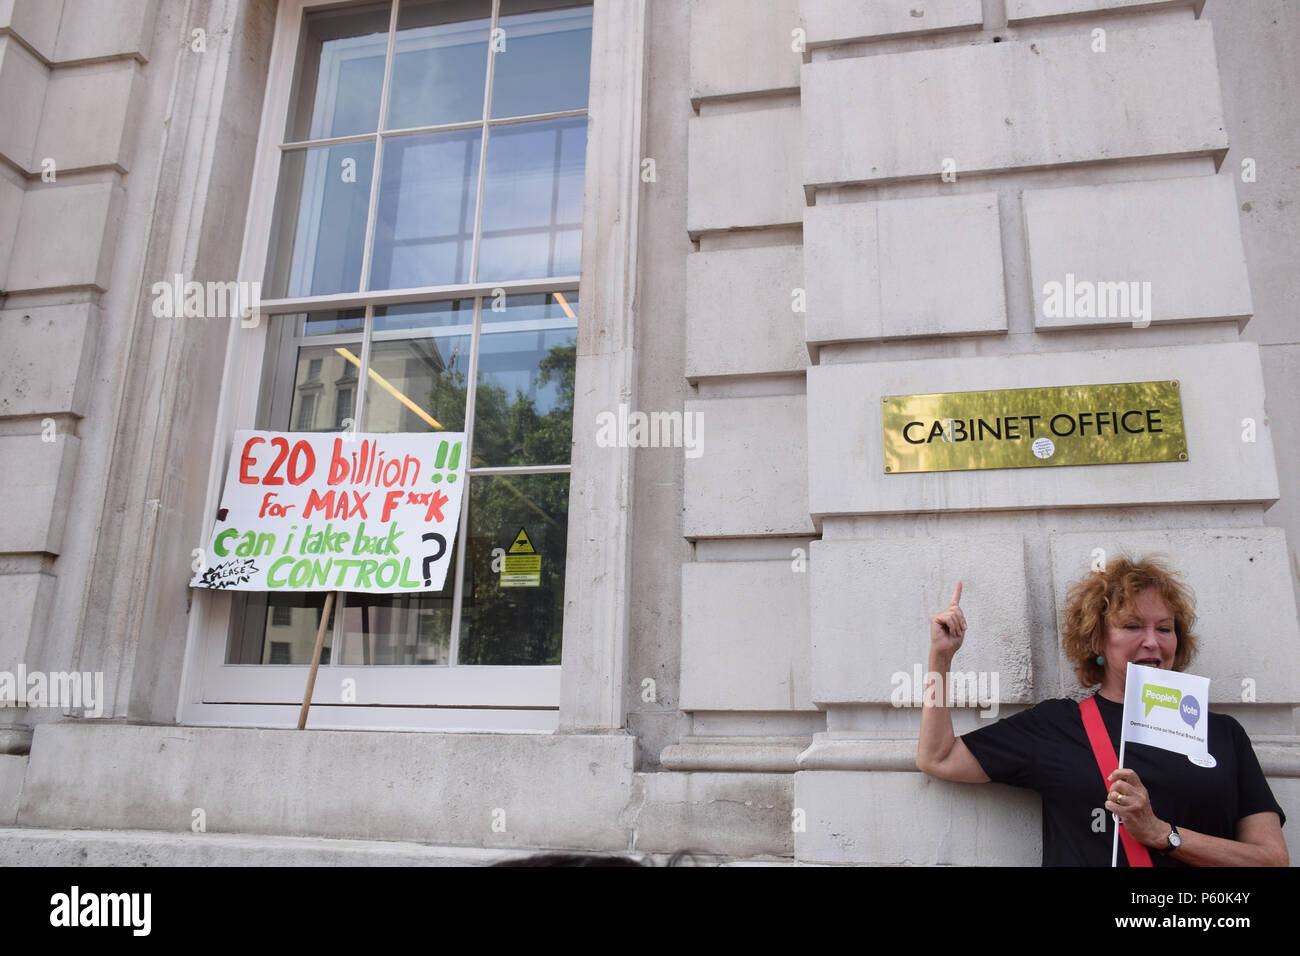 Anti Brexit demo, London 23 June 2018 UK. Campaign for a People's Vote on the final Brexit deal. Protest at the Cabinet Office at 70 Whitehall - Stock Image